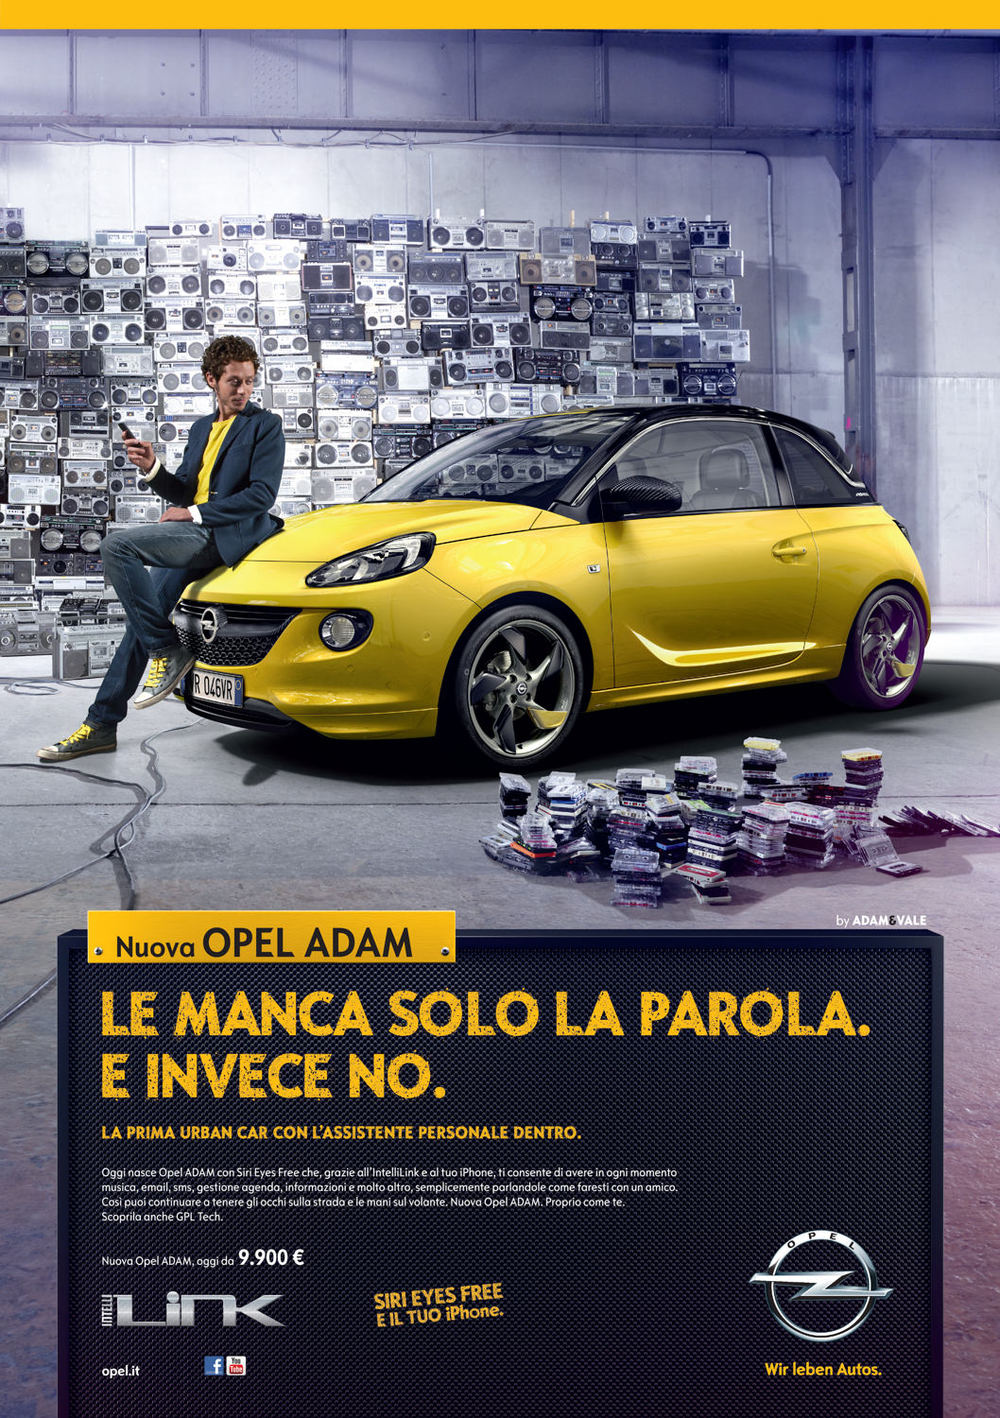 Portfolio_Advertising_opel_adam_valentino_rossi_1.jpg